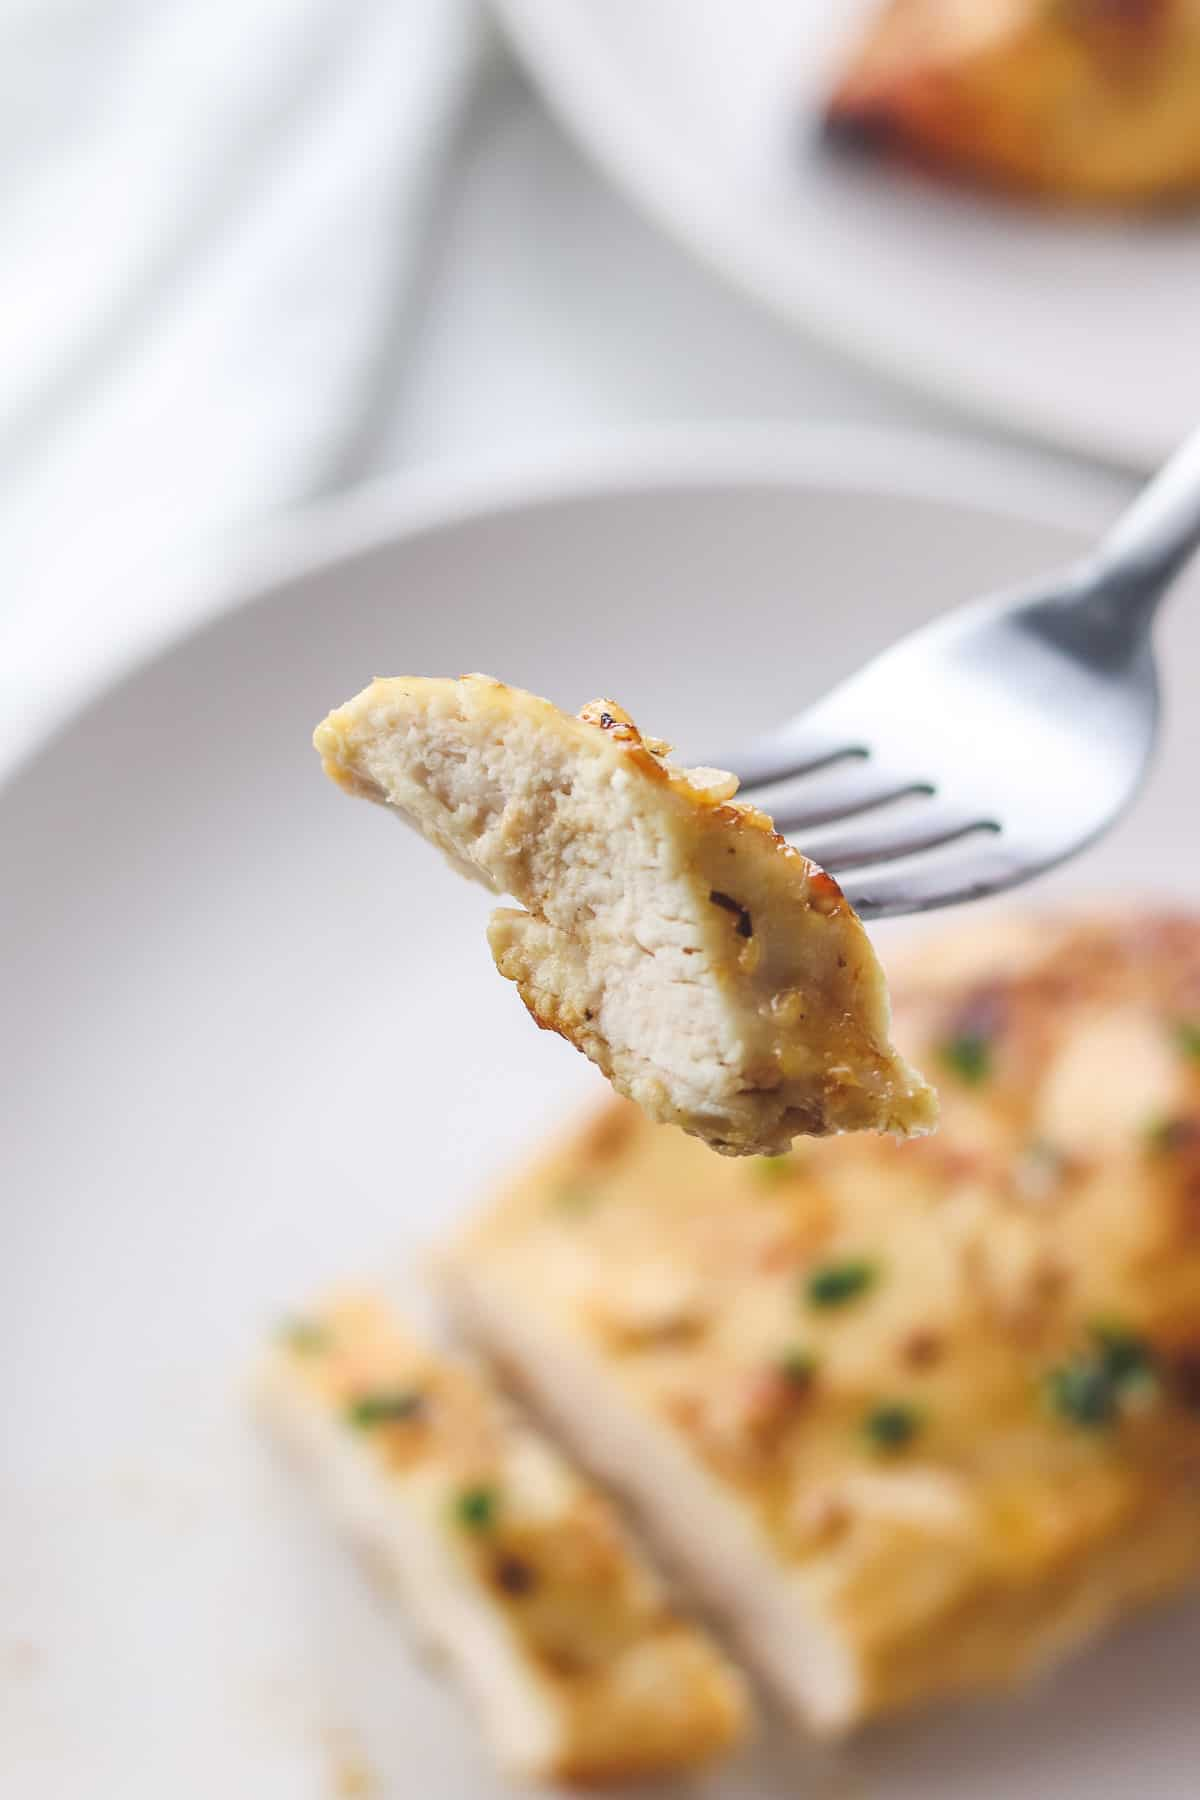 taking a bite of chicken breast with a fork